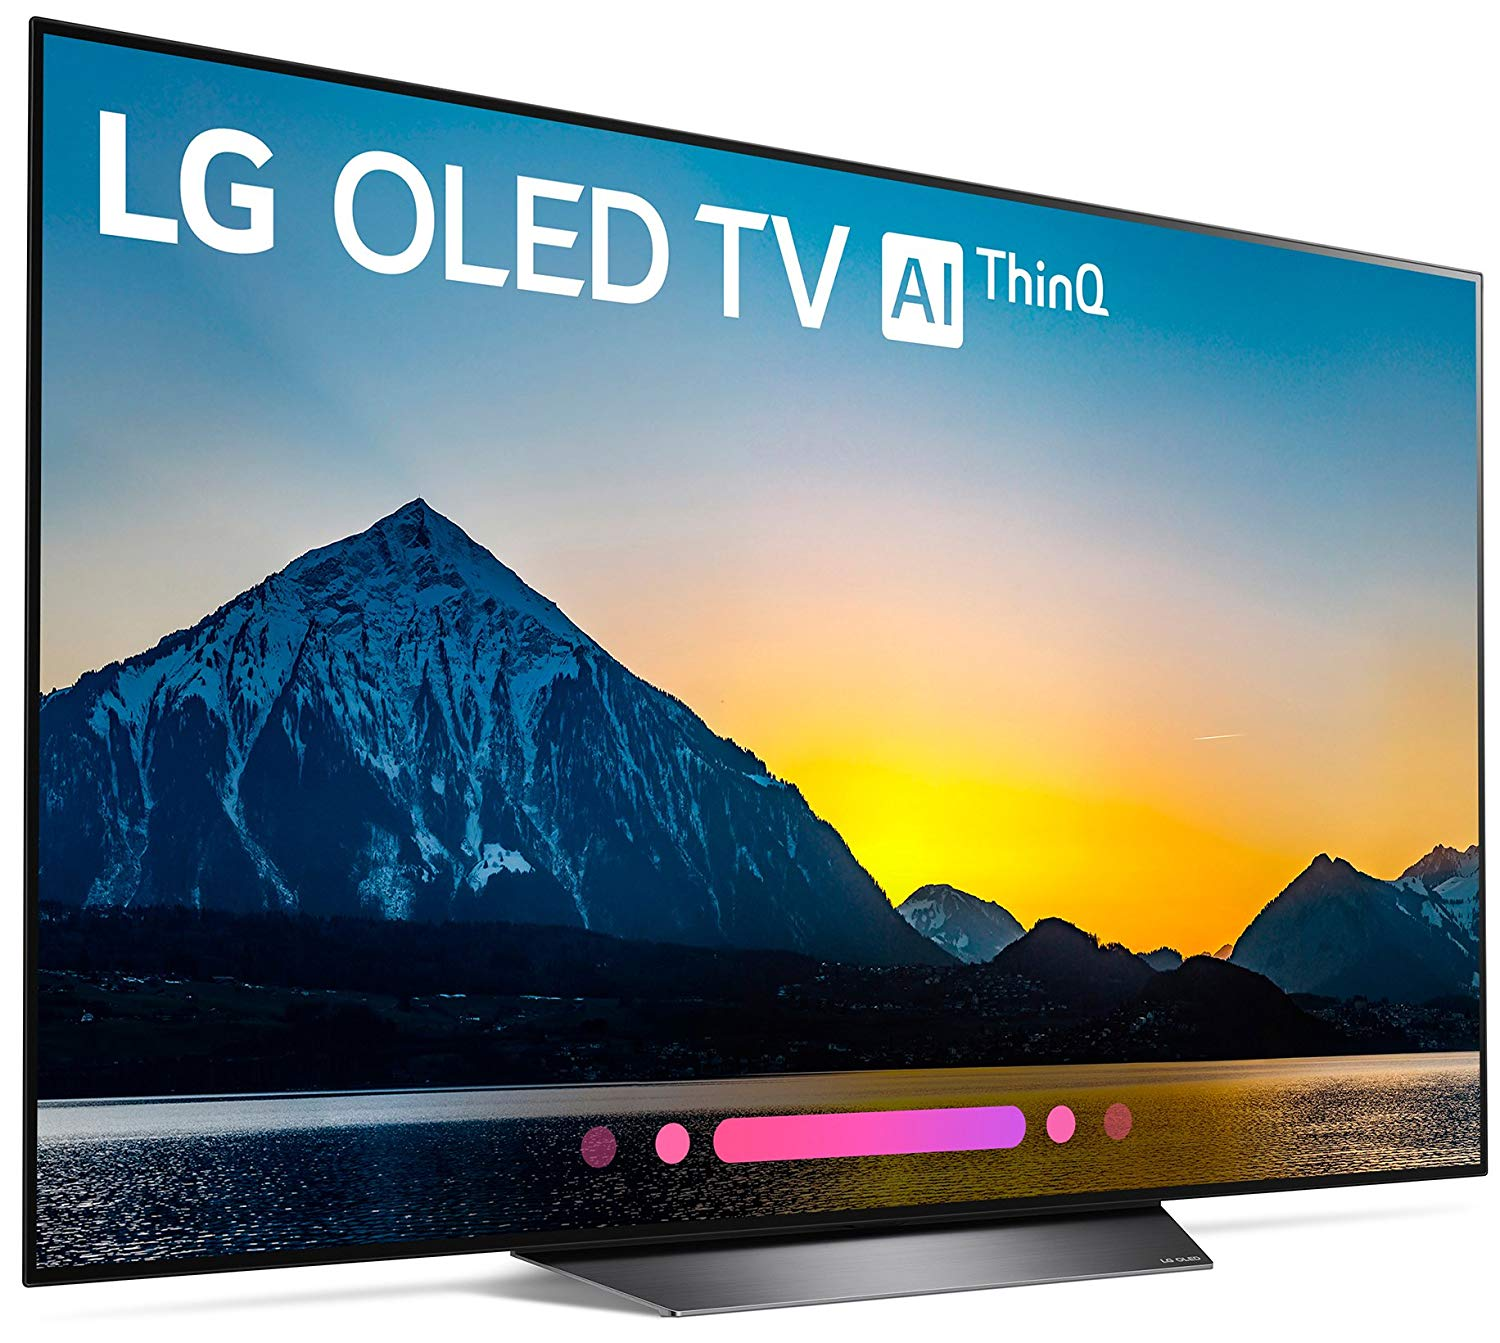 LG OLED, LG AI TV, AMAZON PRIME DAY 4K TVS, PRIME DAY JULY 2019, AMAZON PRIME DAY 2019, 4K TVS, 4K OLED, UHD OLED, UHD LG HDTV